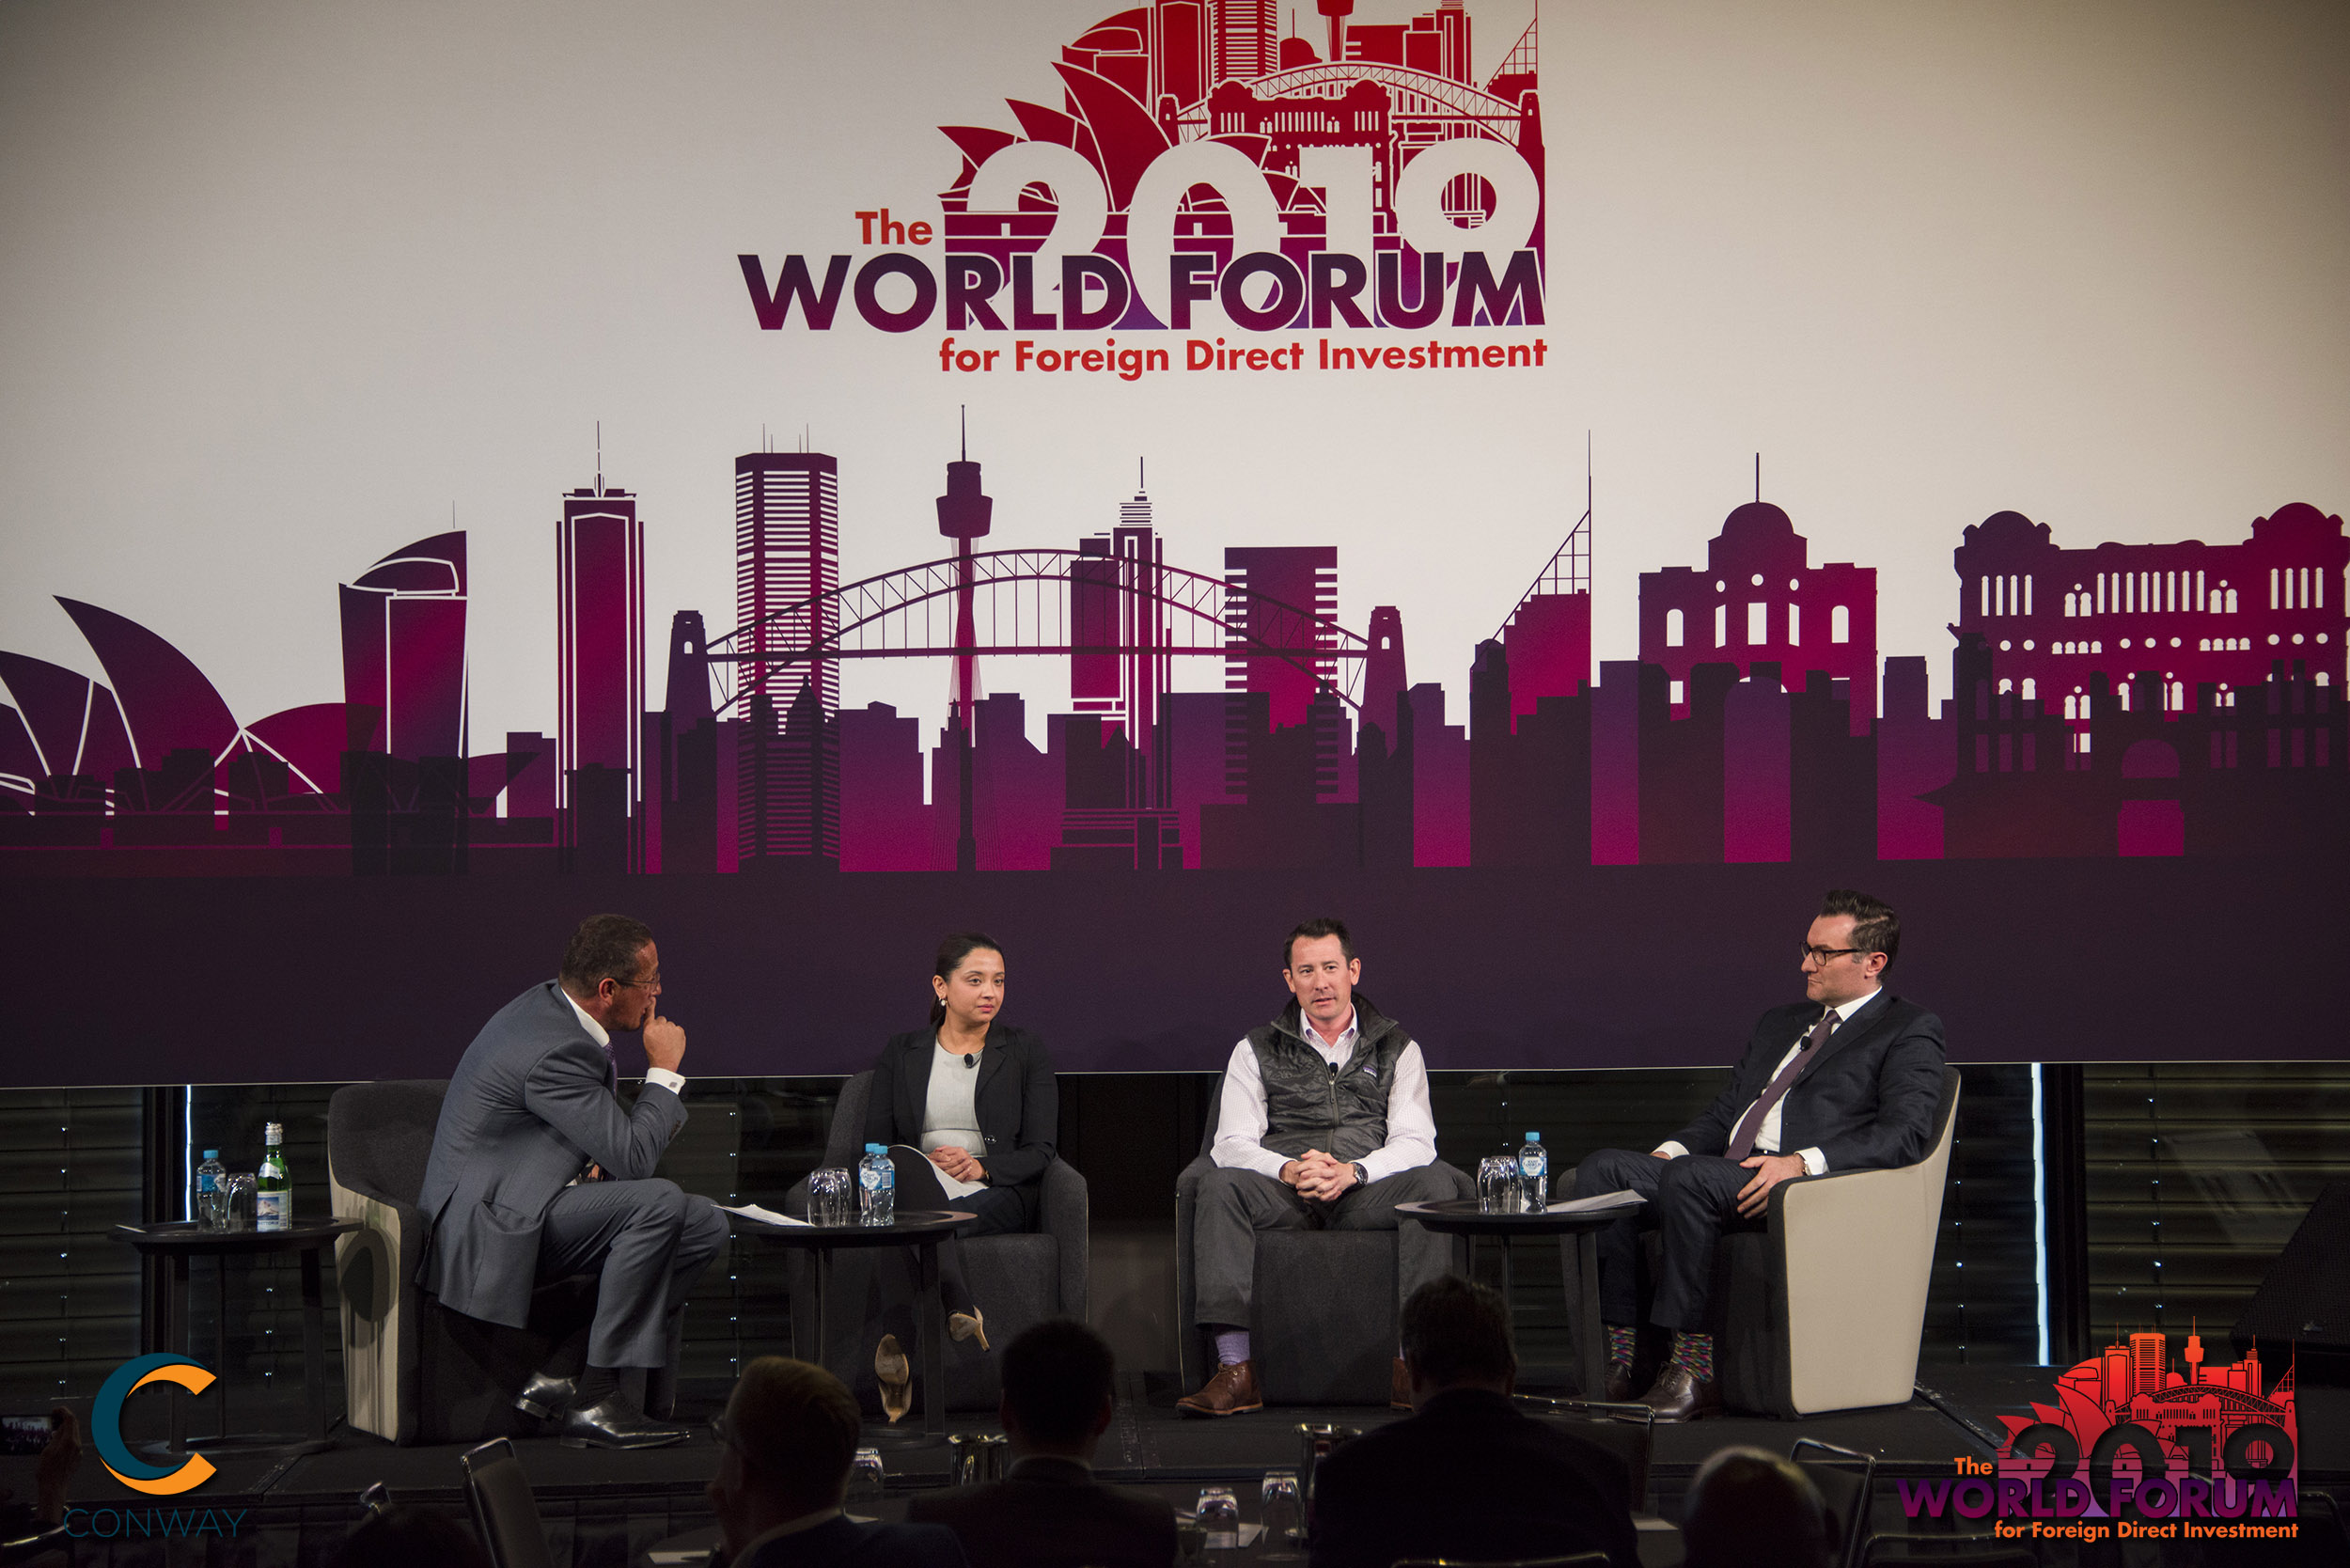 Vitex Pharmaceuticals' CEO, Dr Aniss Chami delivered the keynote speech at the 16th edition of the World Forum for Foreign Direct Investment (FDI) 2019 held on Wednesday 19 June 2019 in Sydney, Australia.